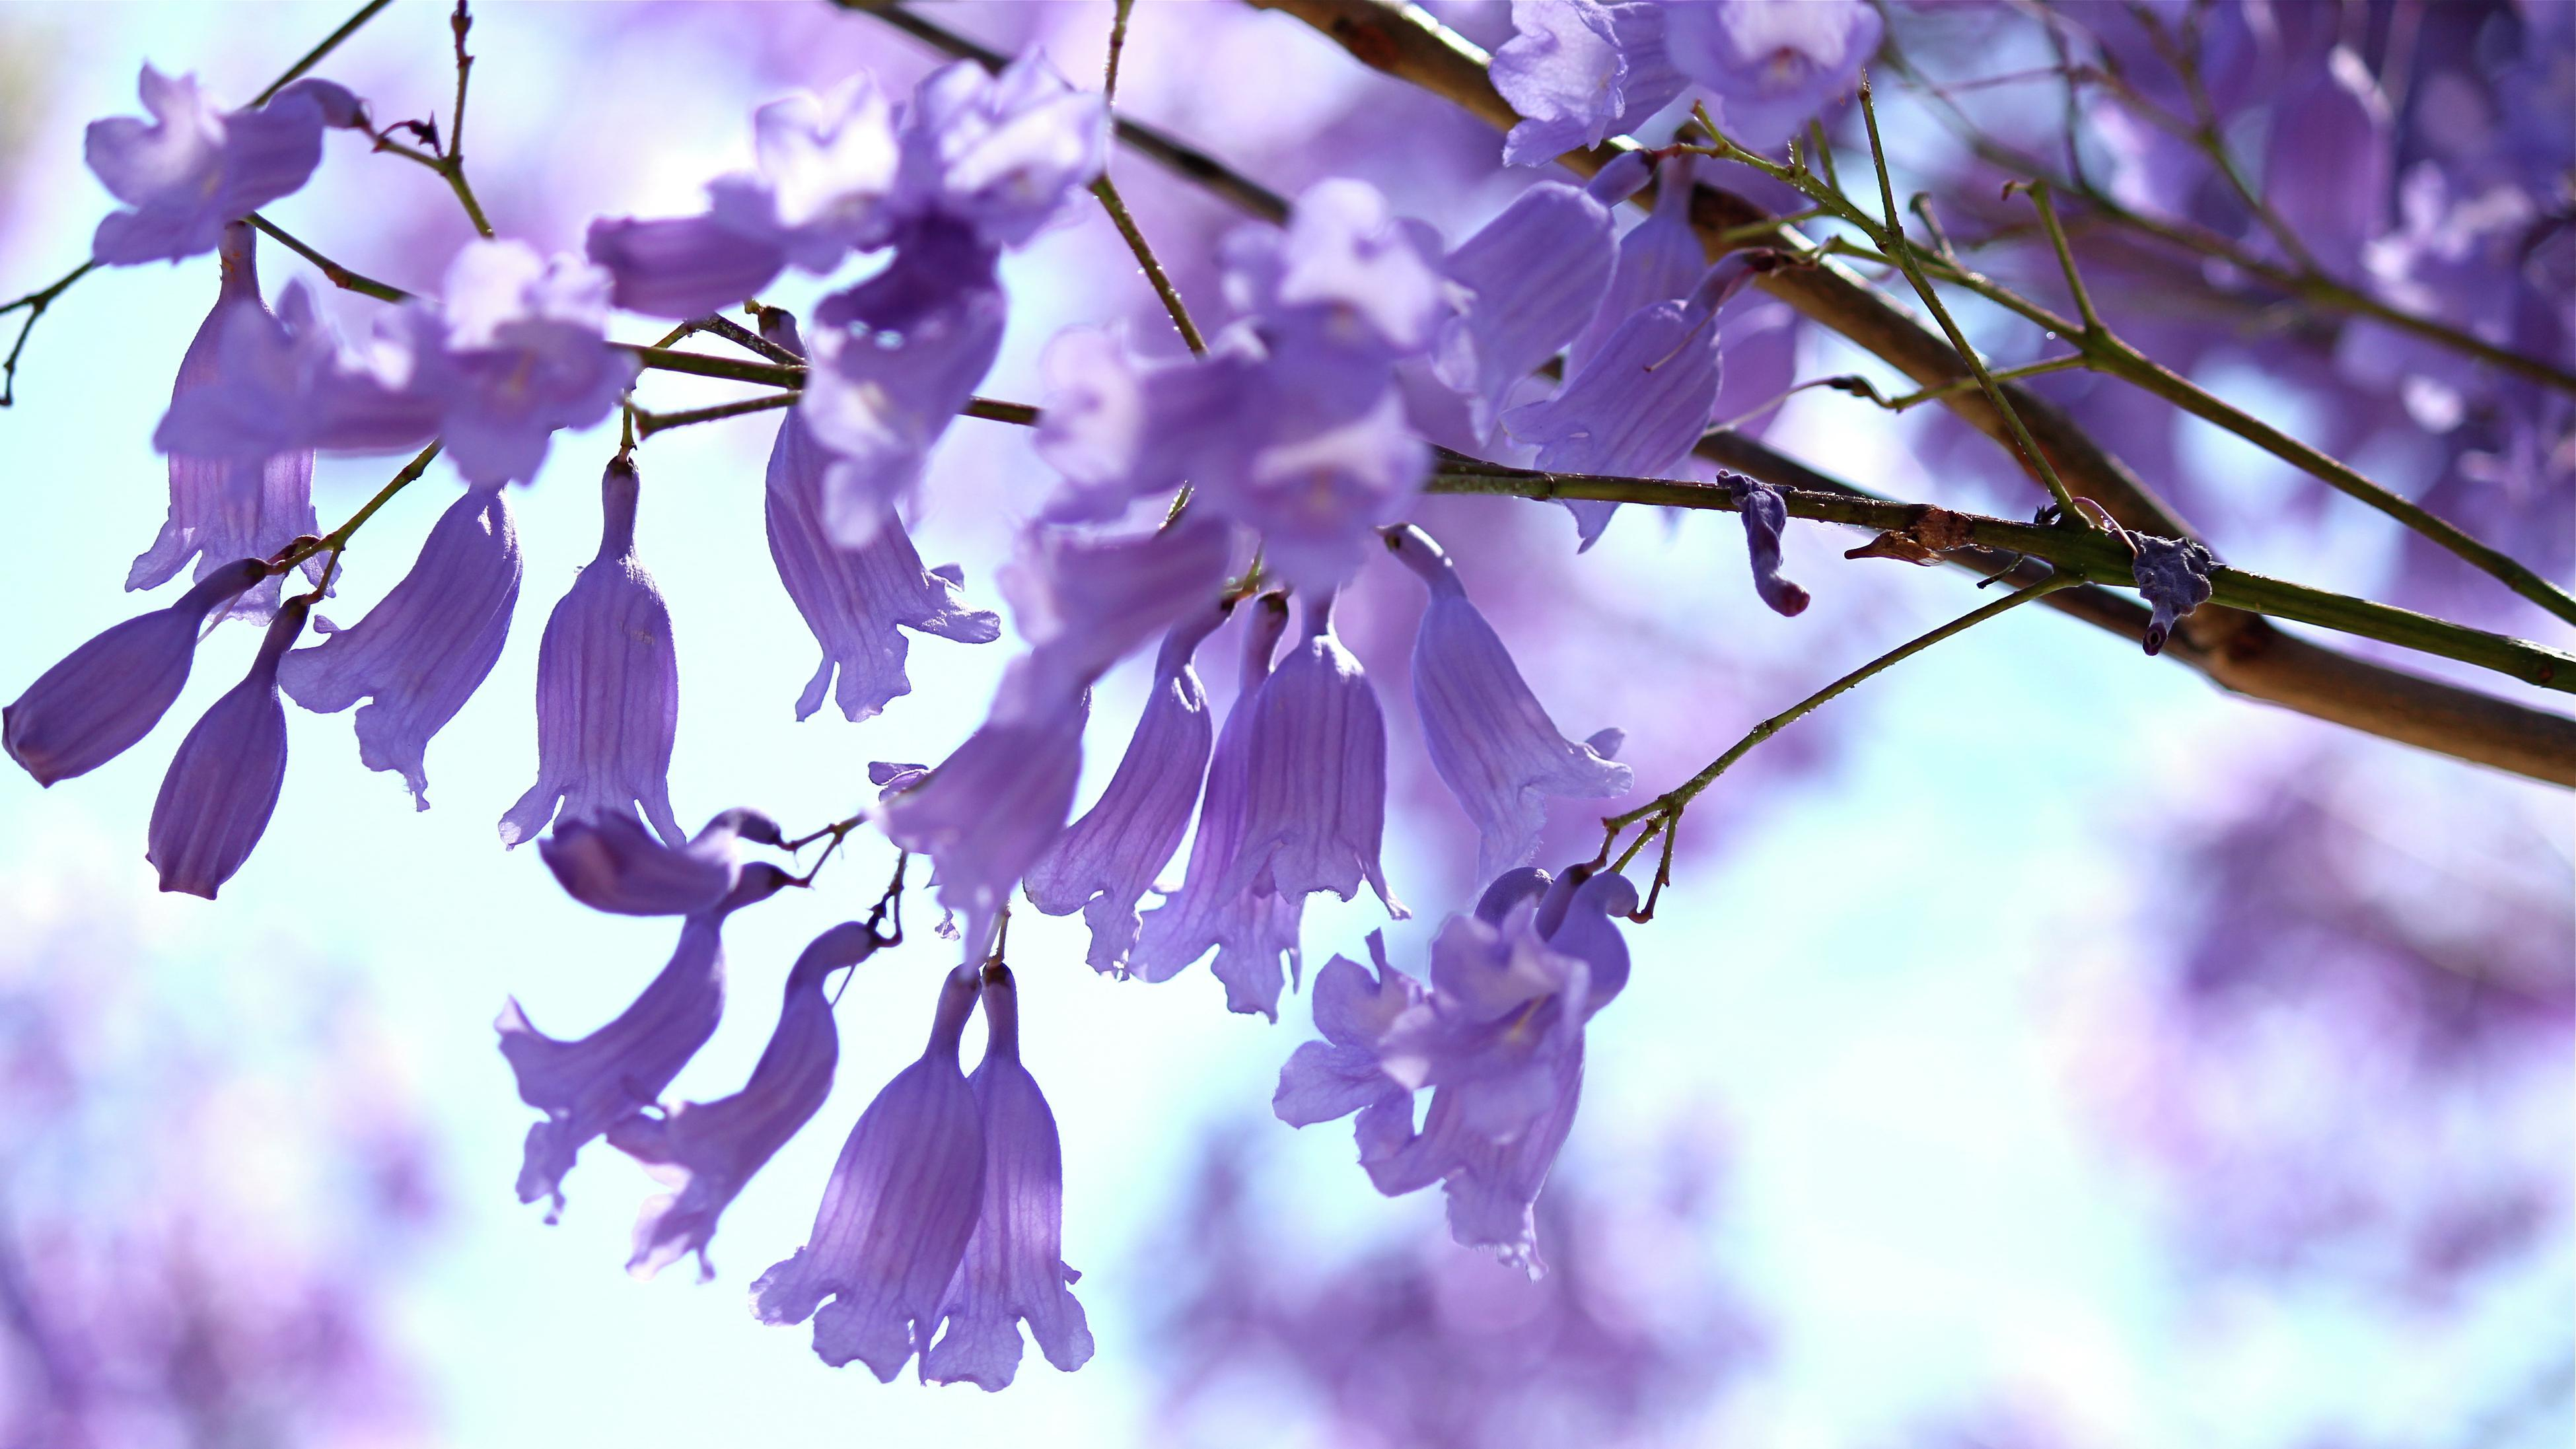 Close up of the delicate lilac flowers of the jacaranda tree.